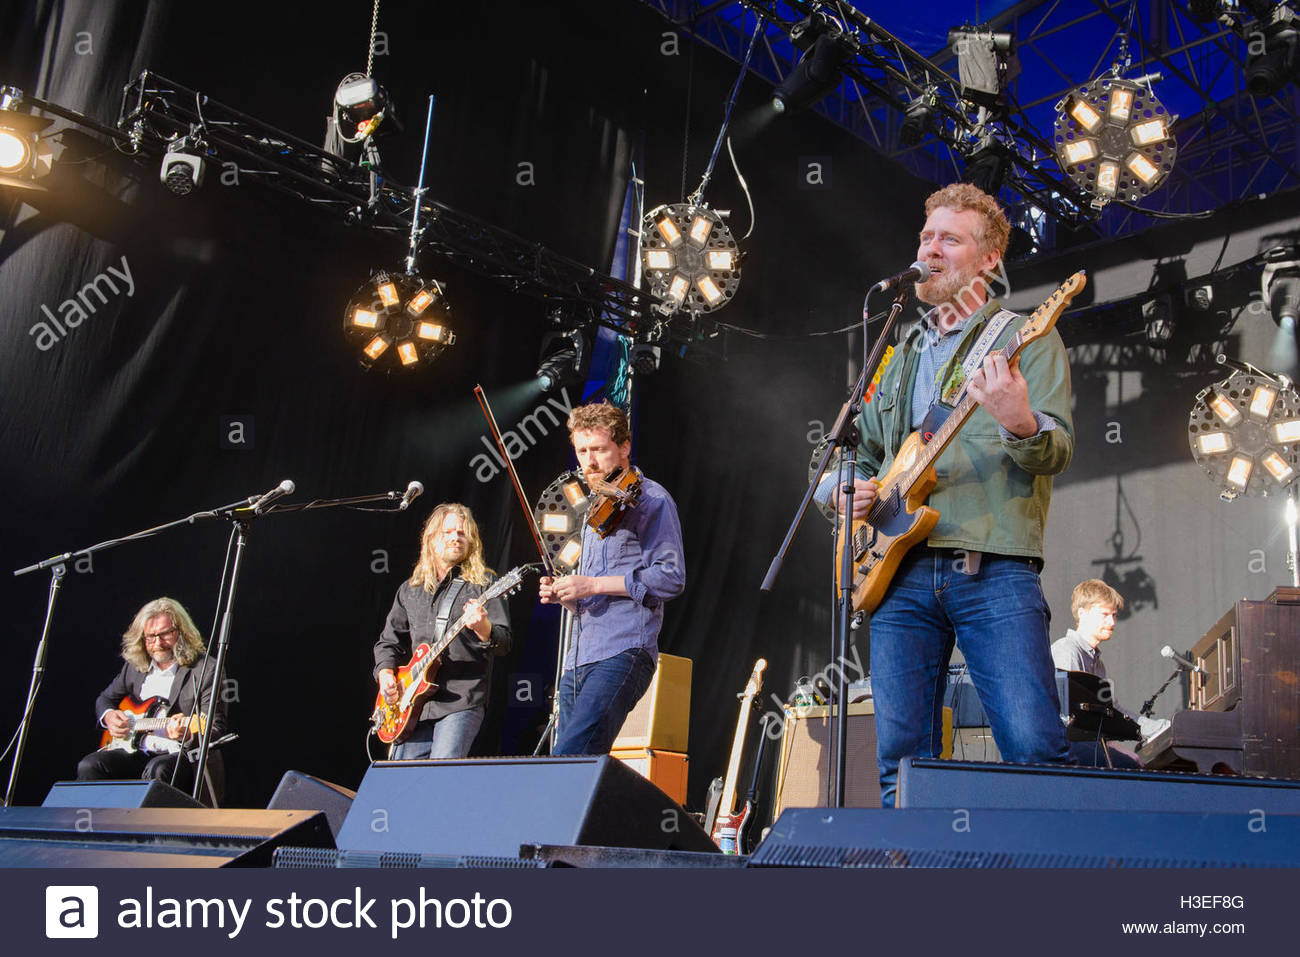 The Frames performing live at Iveagh Gardens, Dublin, Ireland on ...